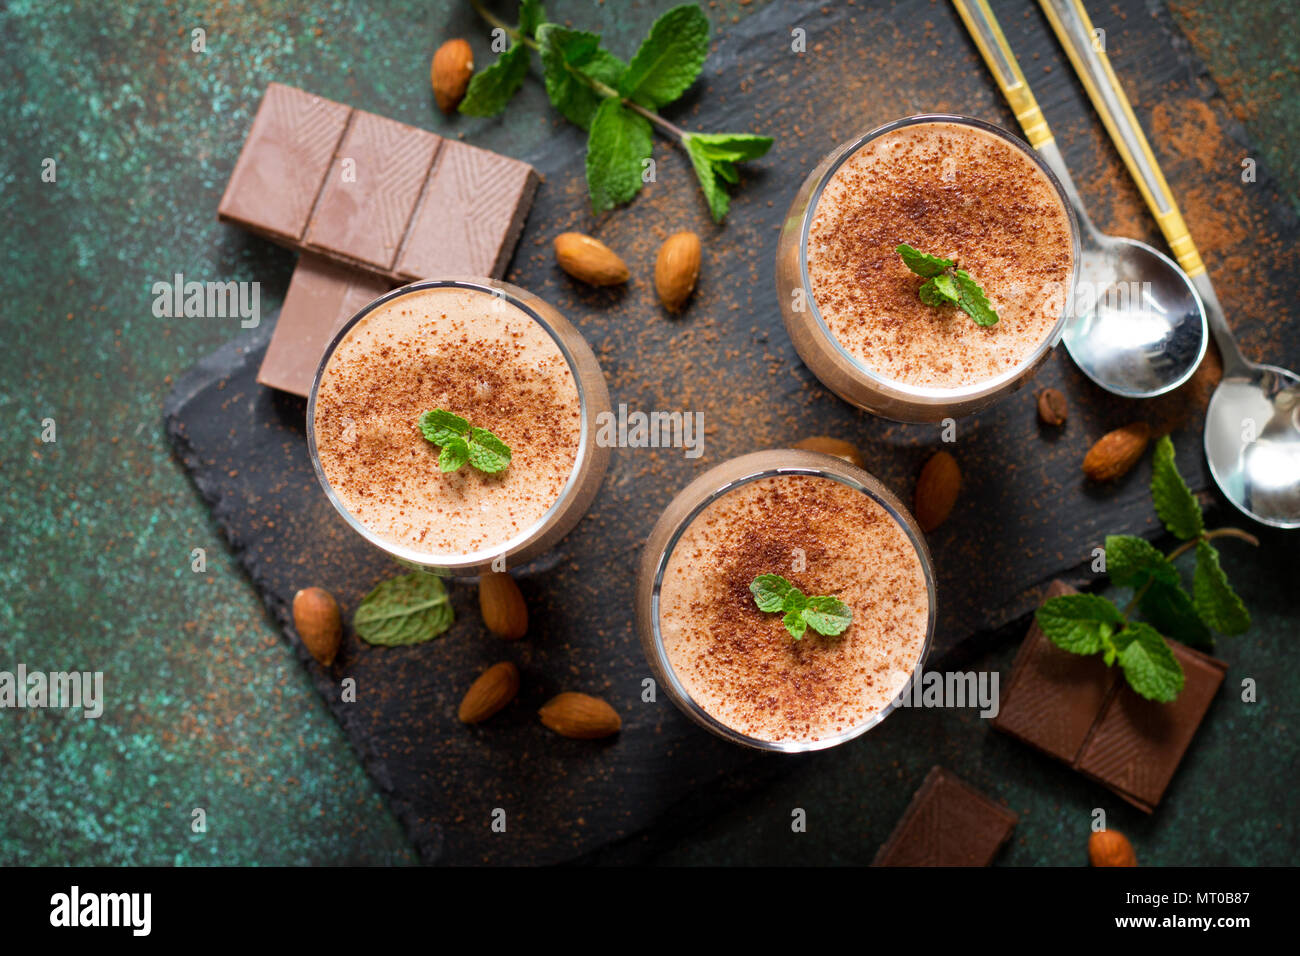 Homemade coffee-chocolate mousse on a stone or slate background. - Stock Image